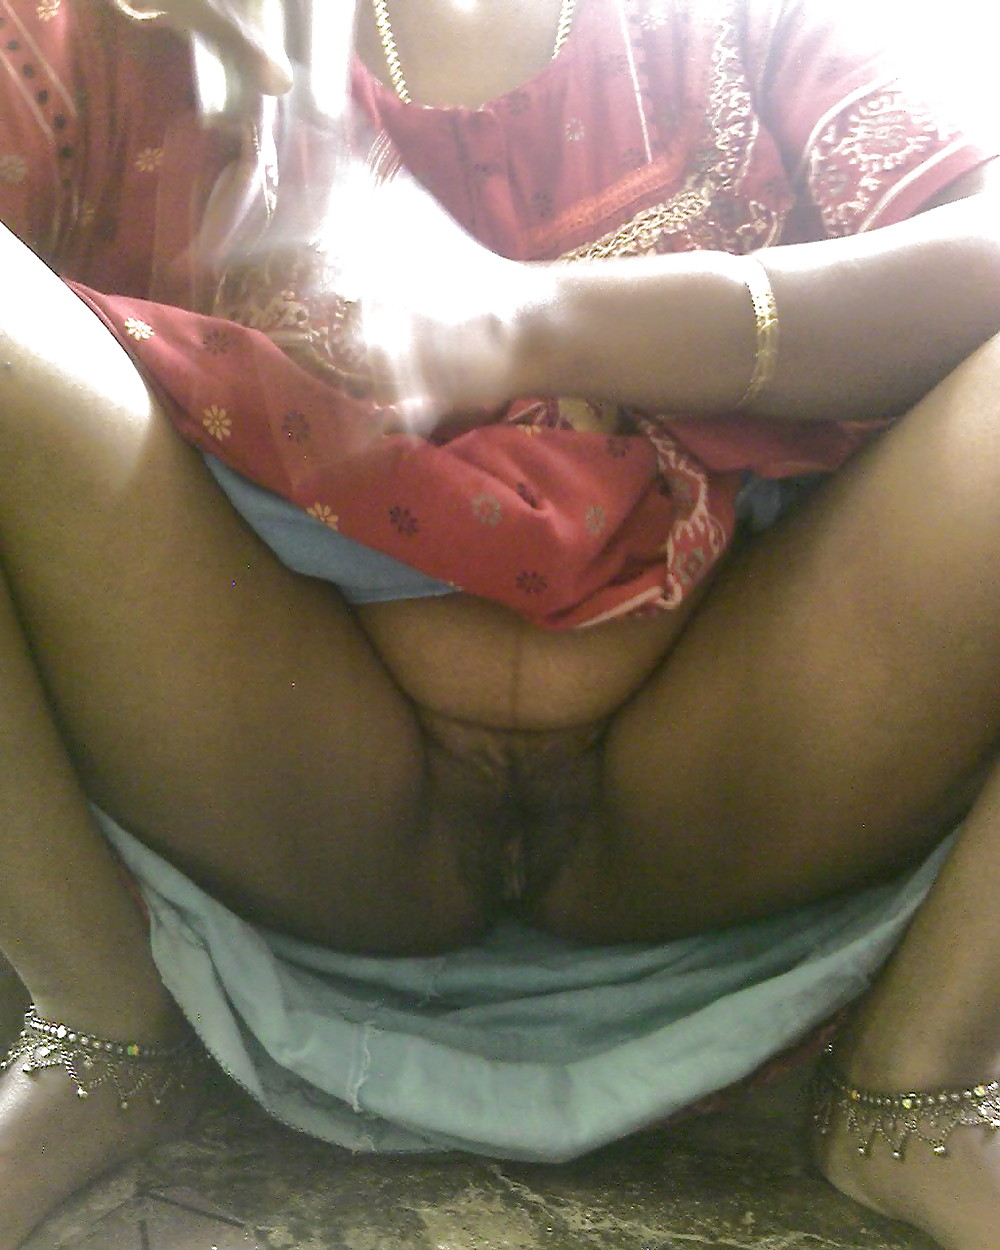 Very grateful Indian girl pissing nude think